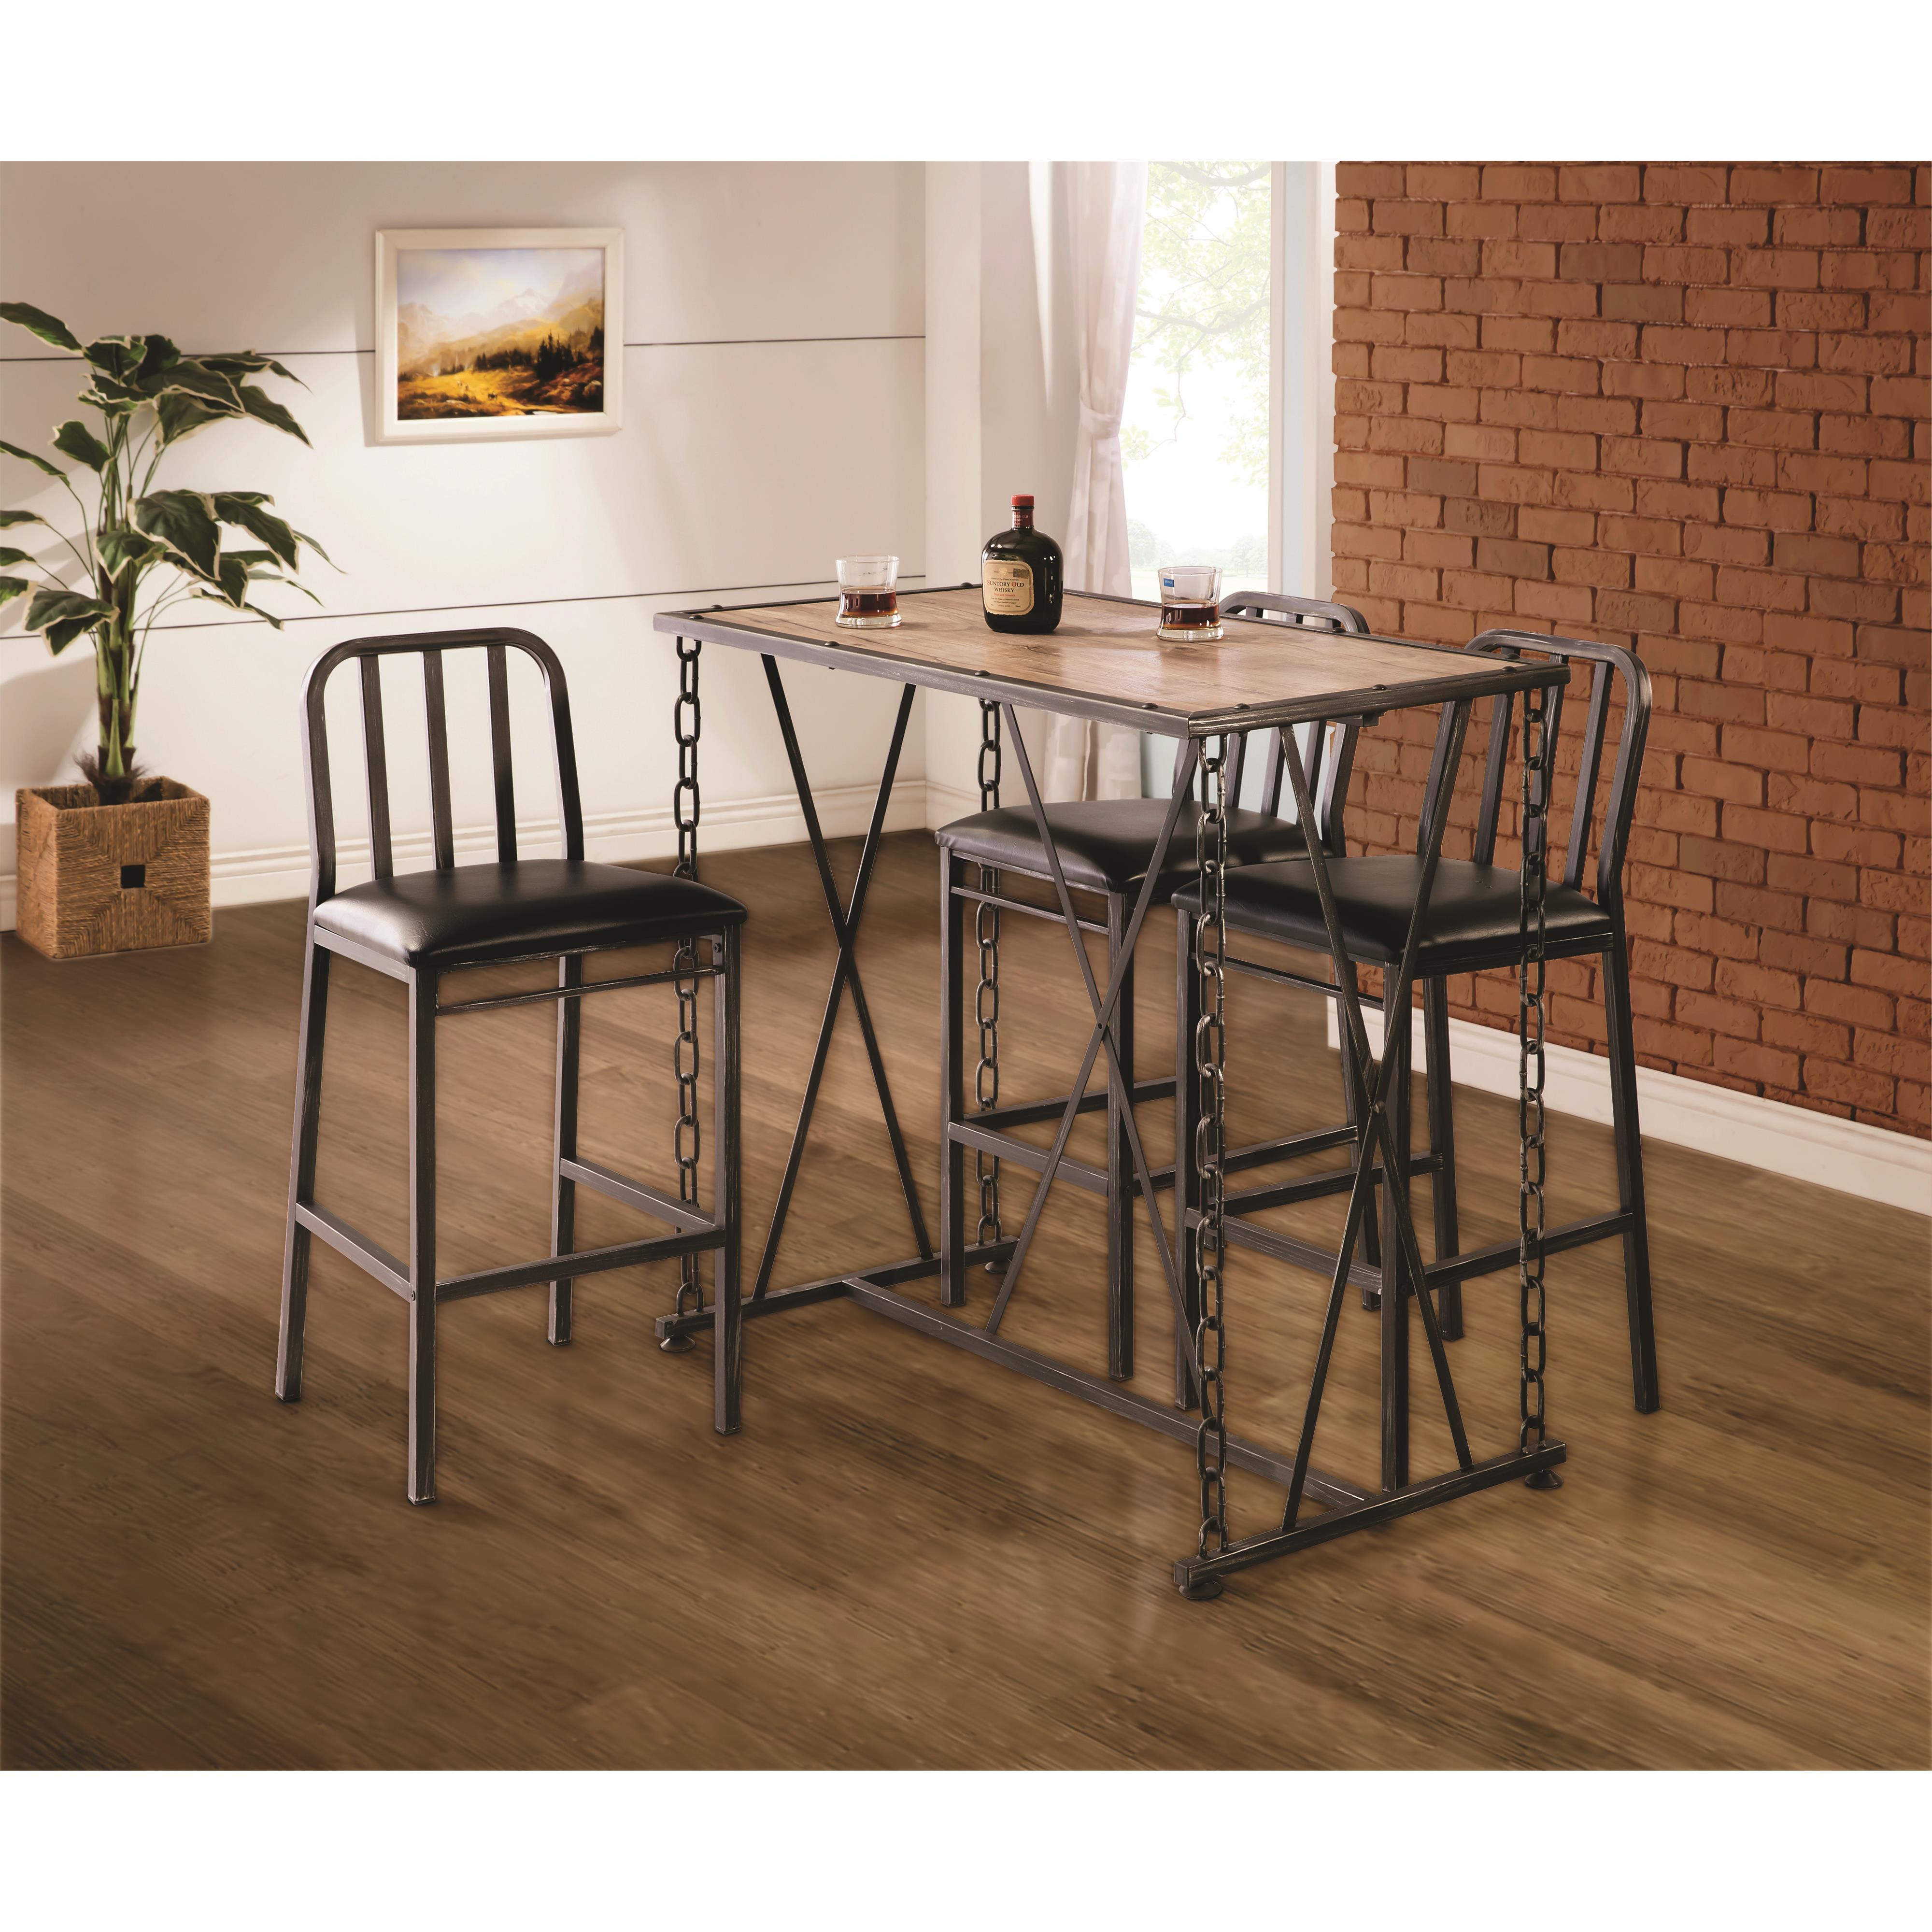 10069 rustic industrial chain link bar table quality furniture at